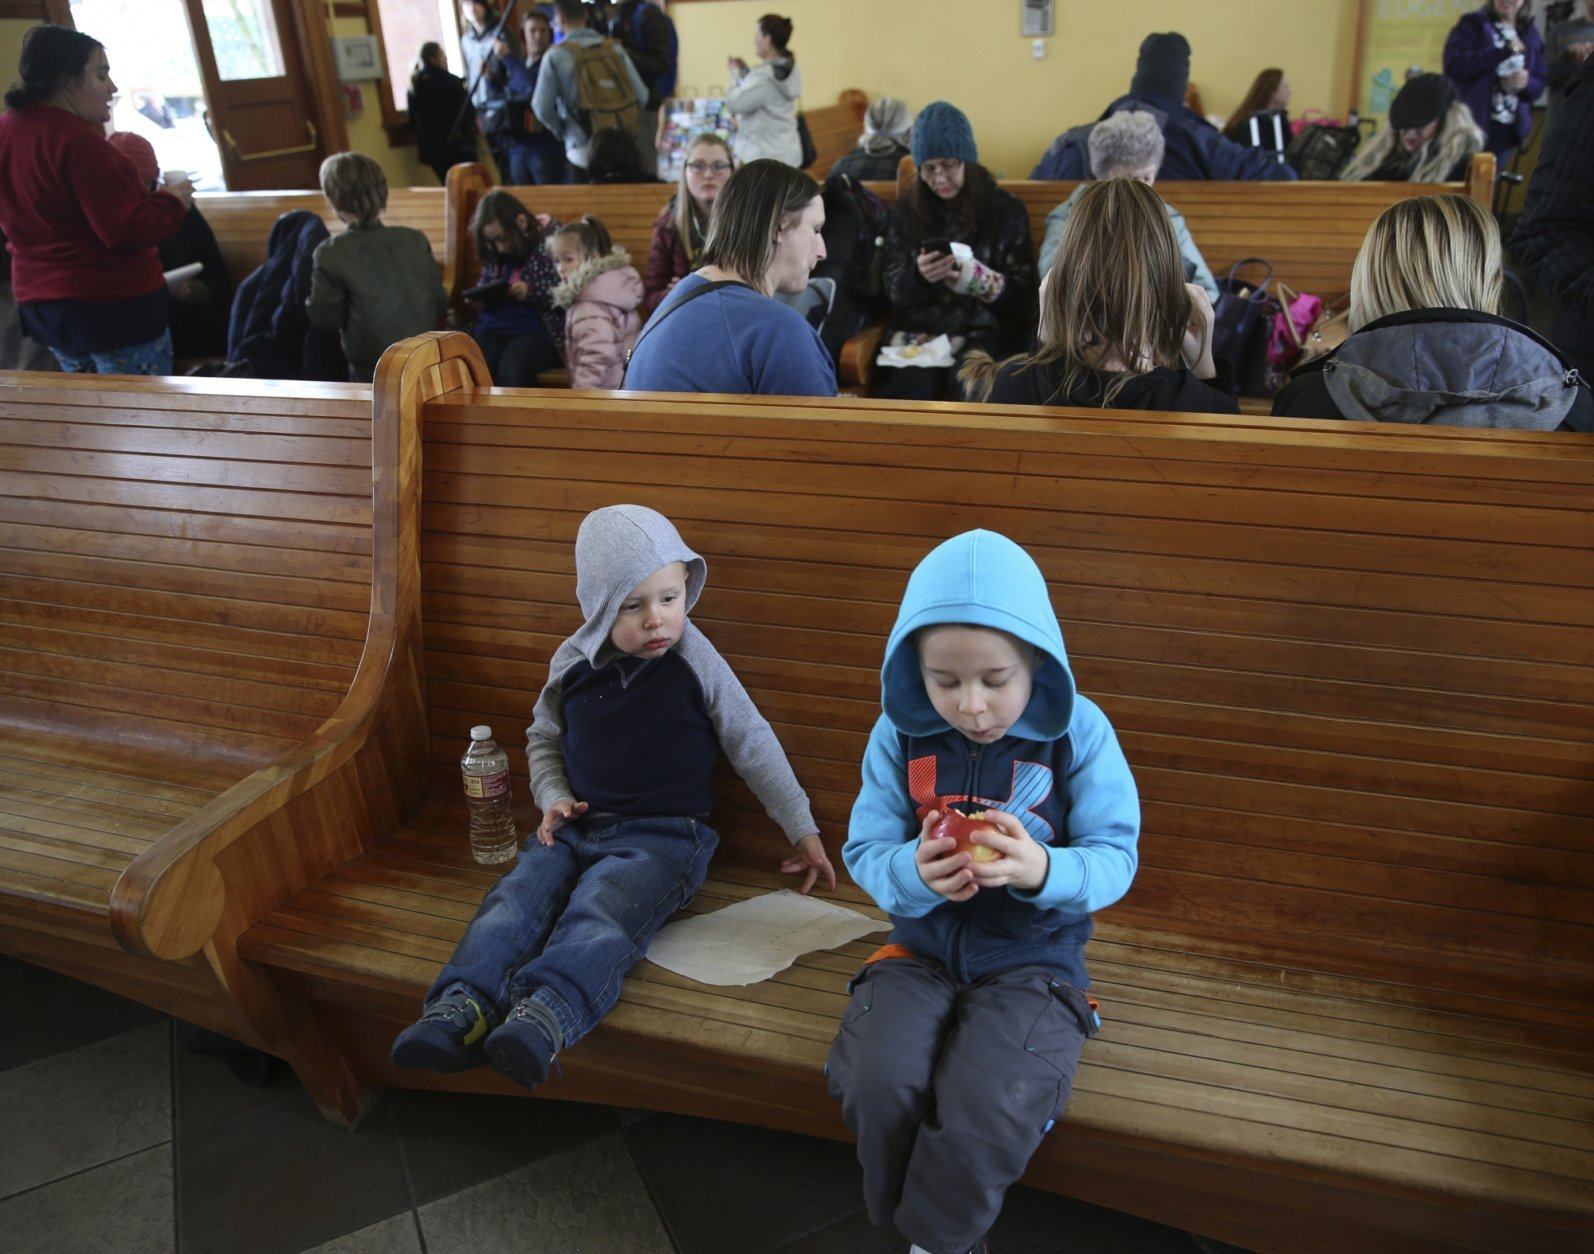 Ryder Albright, 2, left, and his brother Logan Albright, 5, get some food and water in the waiting area of the Eugene Amtrak Station with over a hundred other people after arriving, Tuesday, Feb. 26, 2019, Eugene, Ore., after being stranded with their parents overnight in the train in the mountains east of Eugene. (AP Photo/Chris Pietsch)